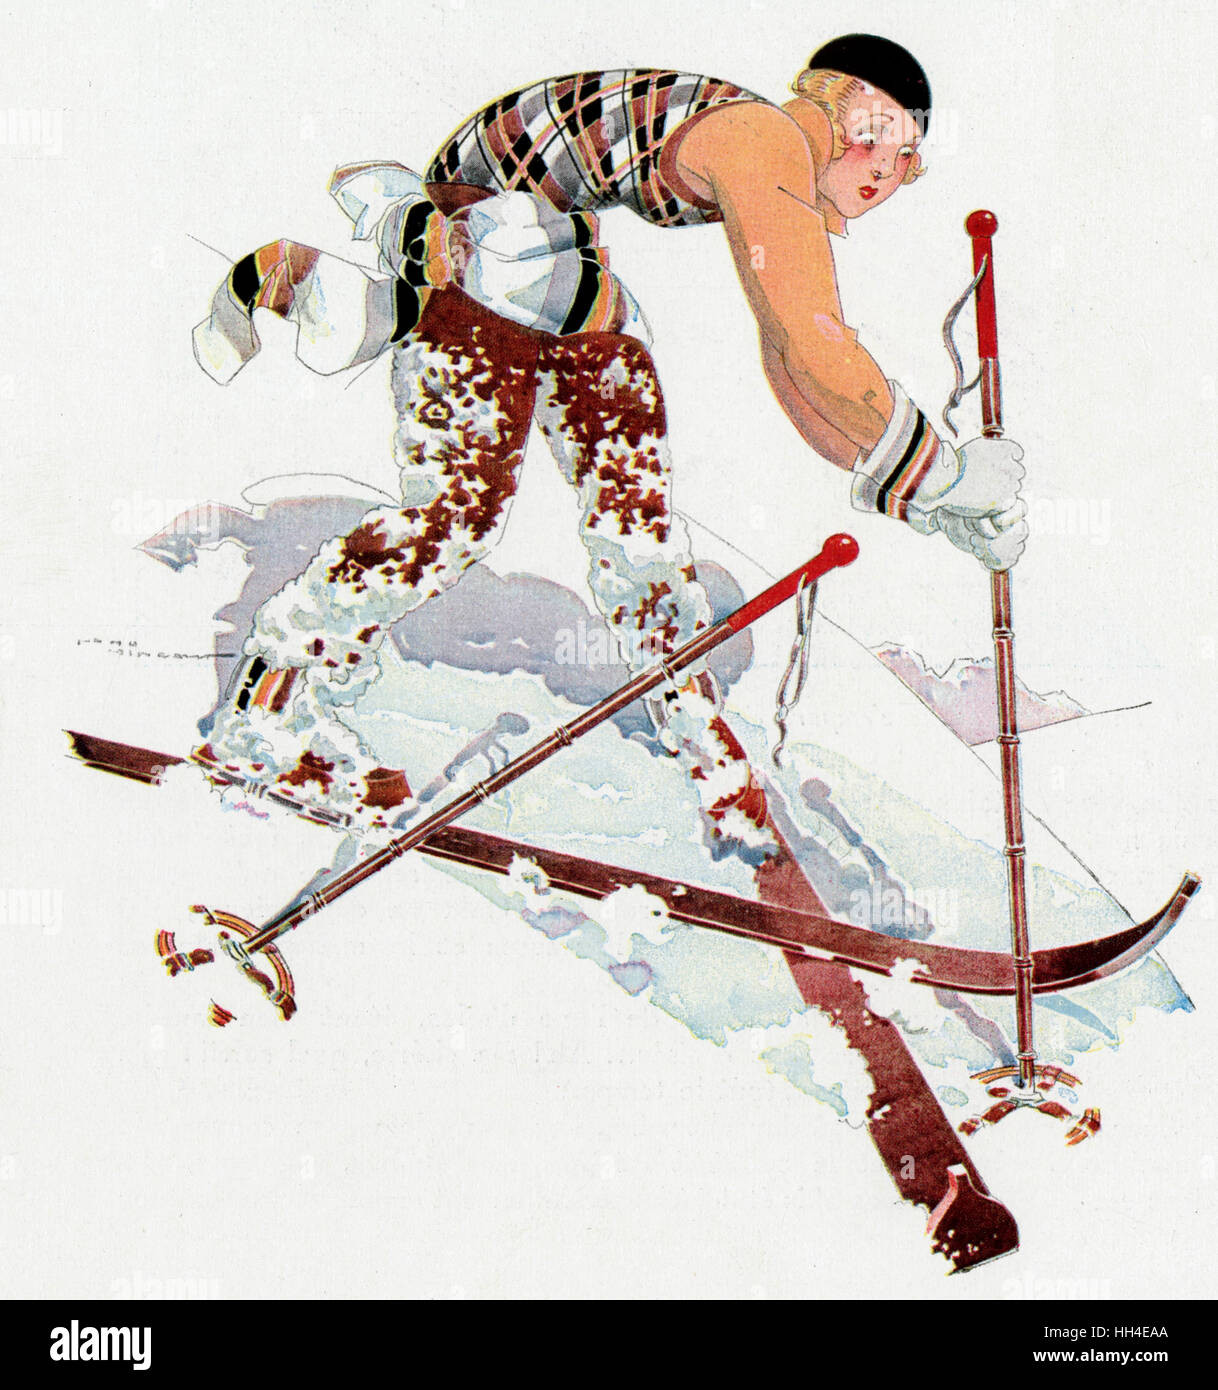 This skier is heading for a  fall - she's got her skis  crossed (and that ain't good). - Stock Image